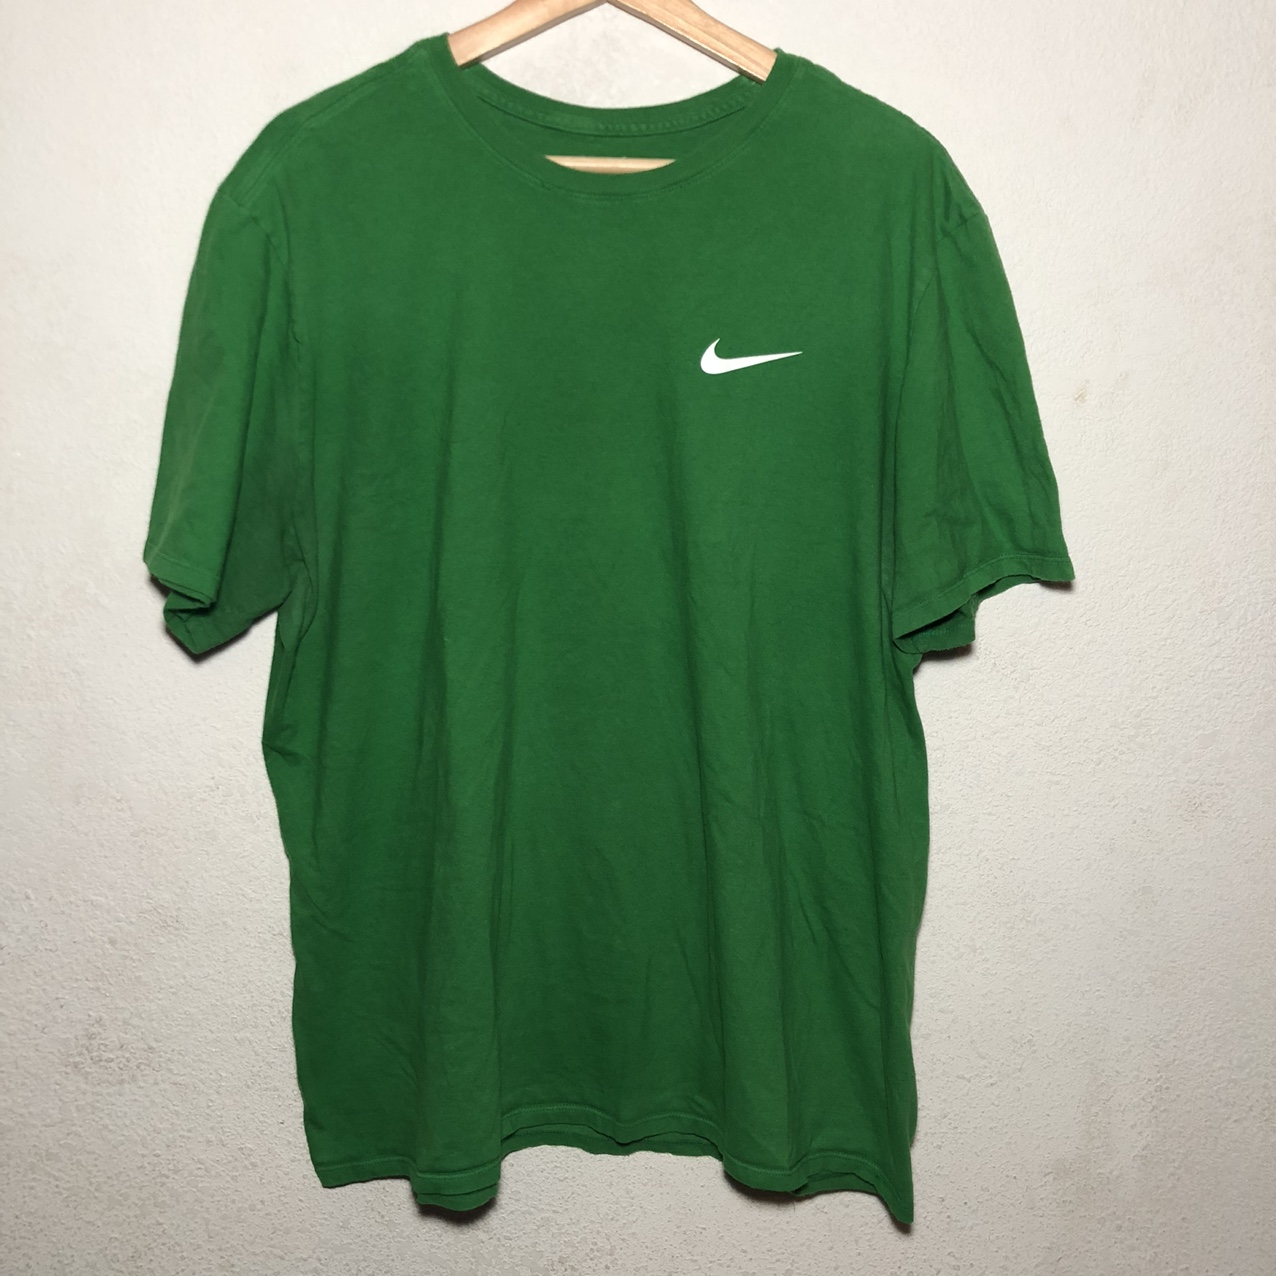 Product Image 1 - Nike T shirt Condition: Preowned Dm for